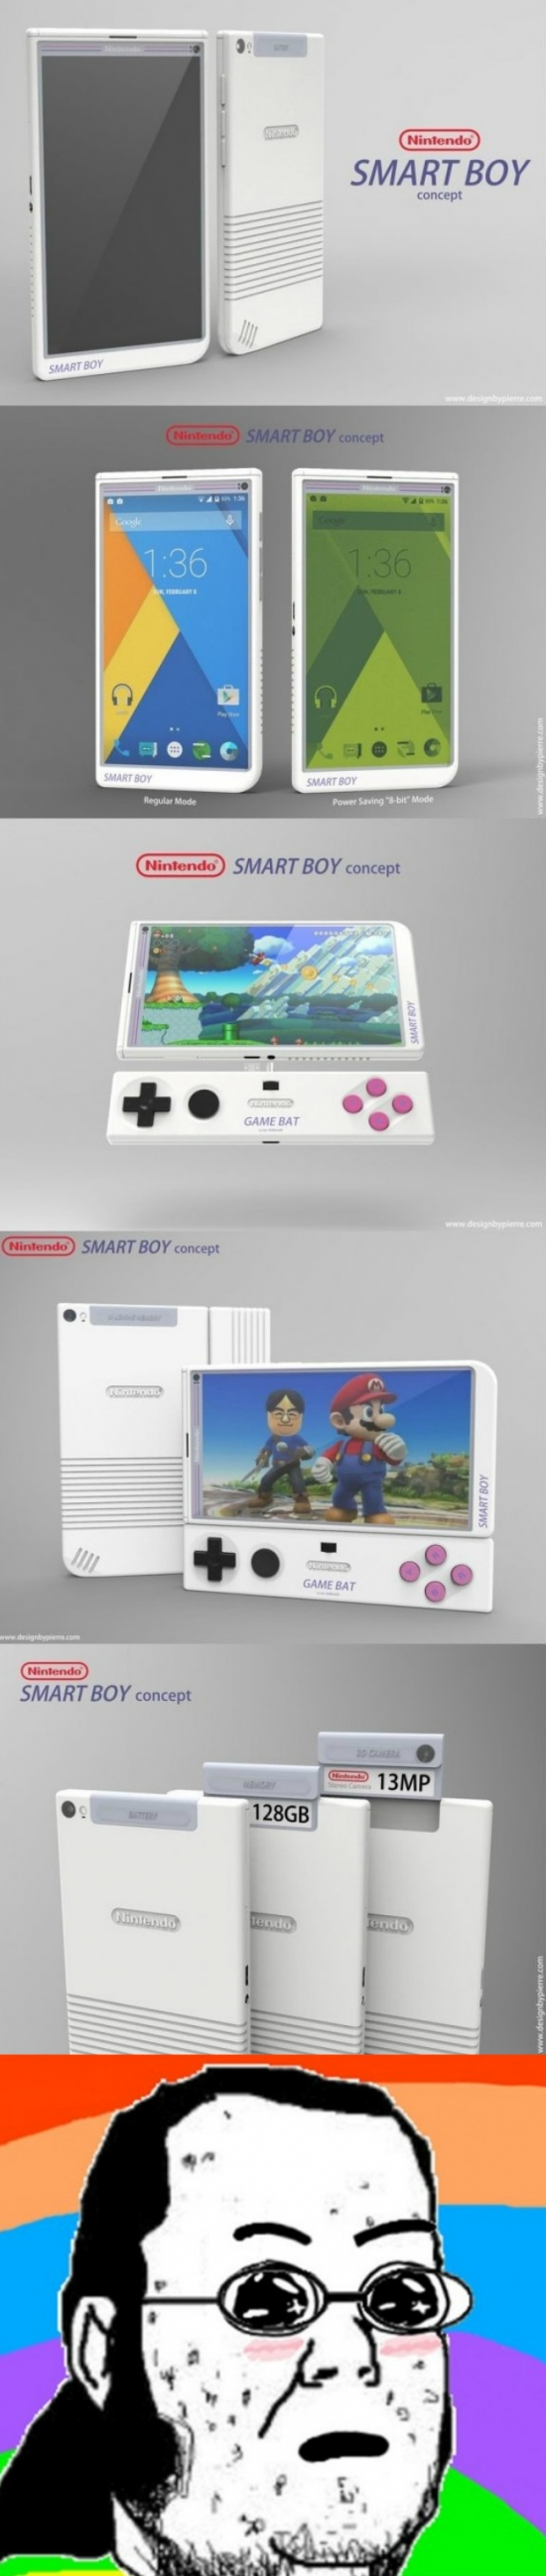 amazed,consola movil,frikis,juegos,keep calm que es prototipo,nintendo,perfecta para gamers,smart boy,telefono